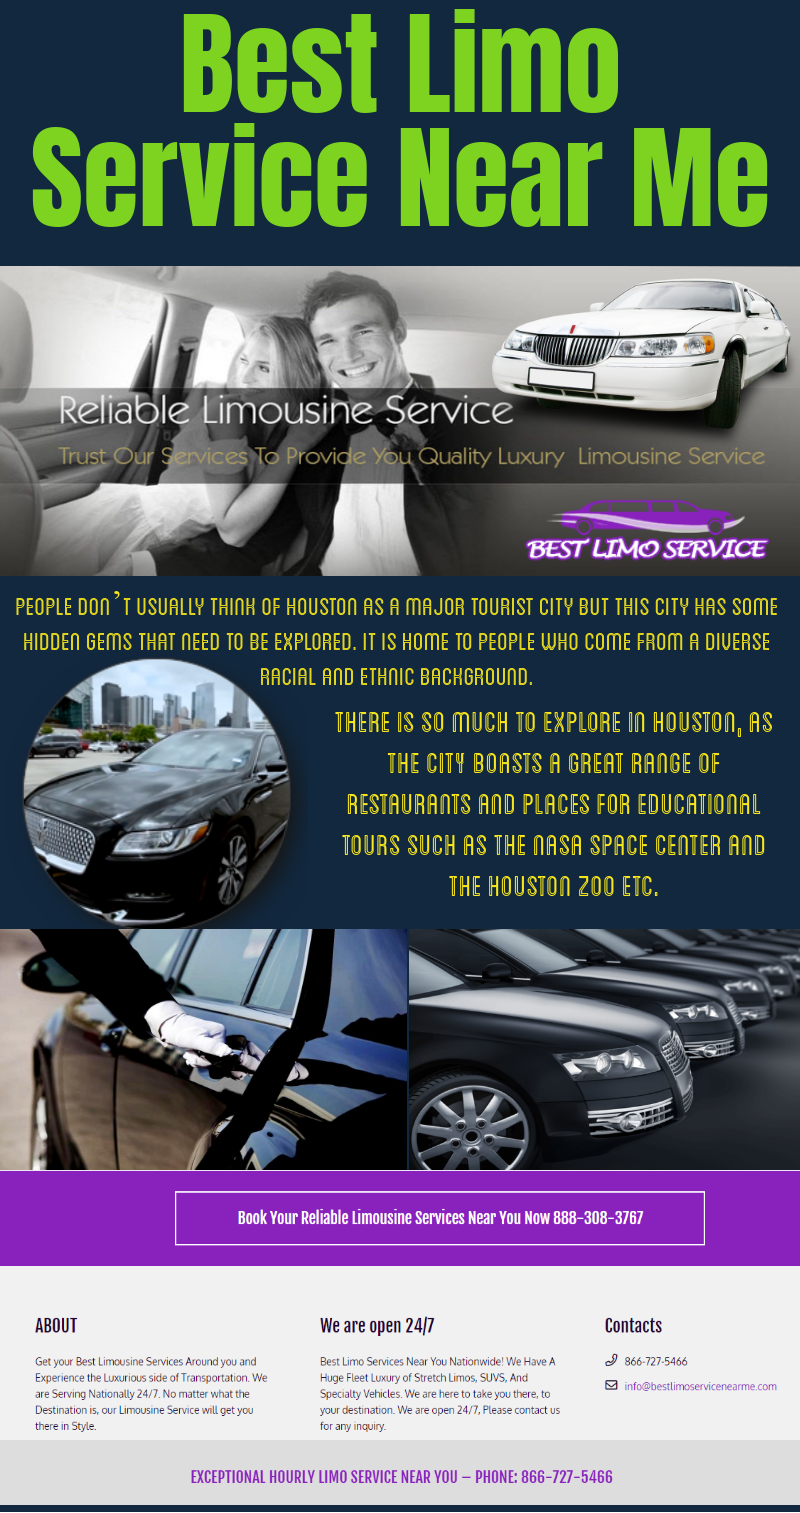 Best limo service near me is the ideal choice when going